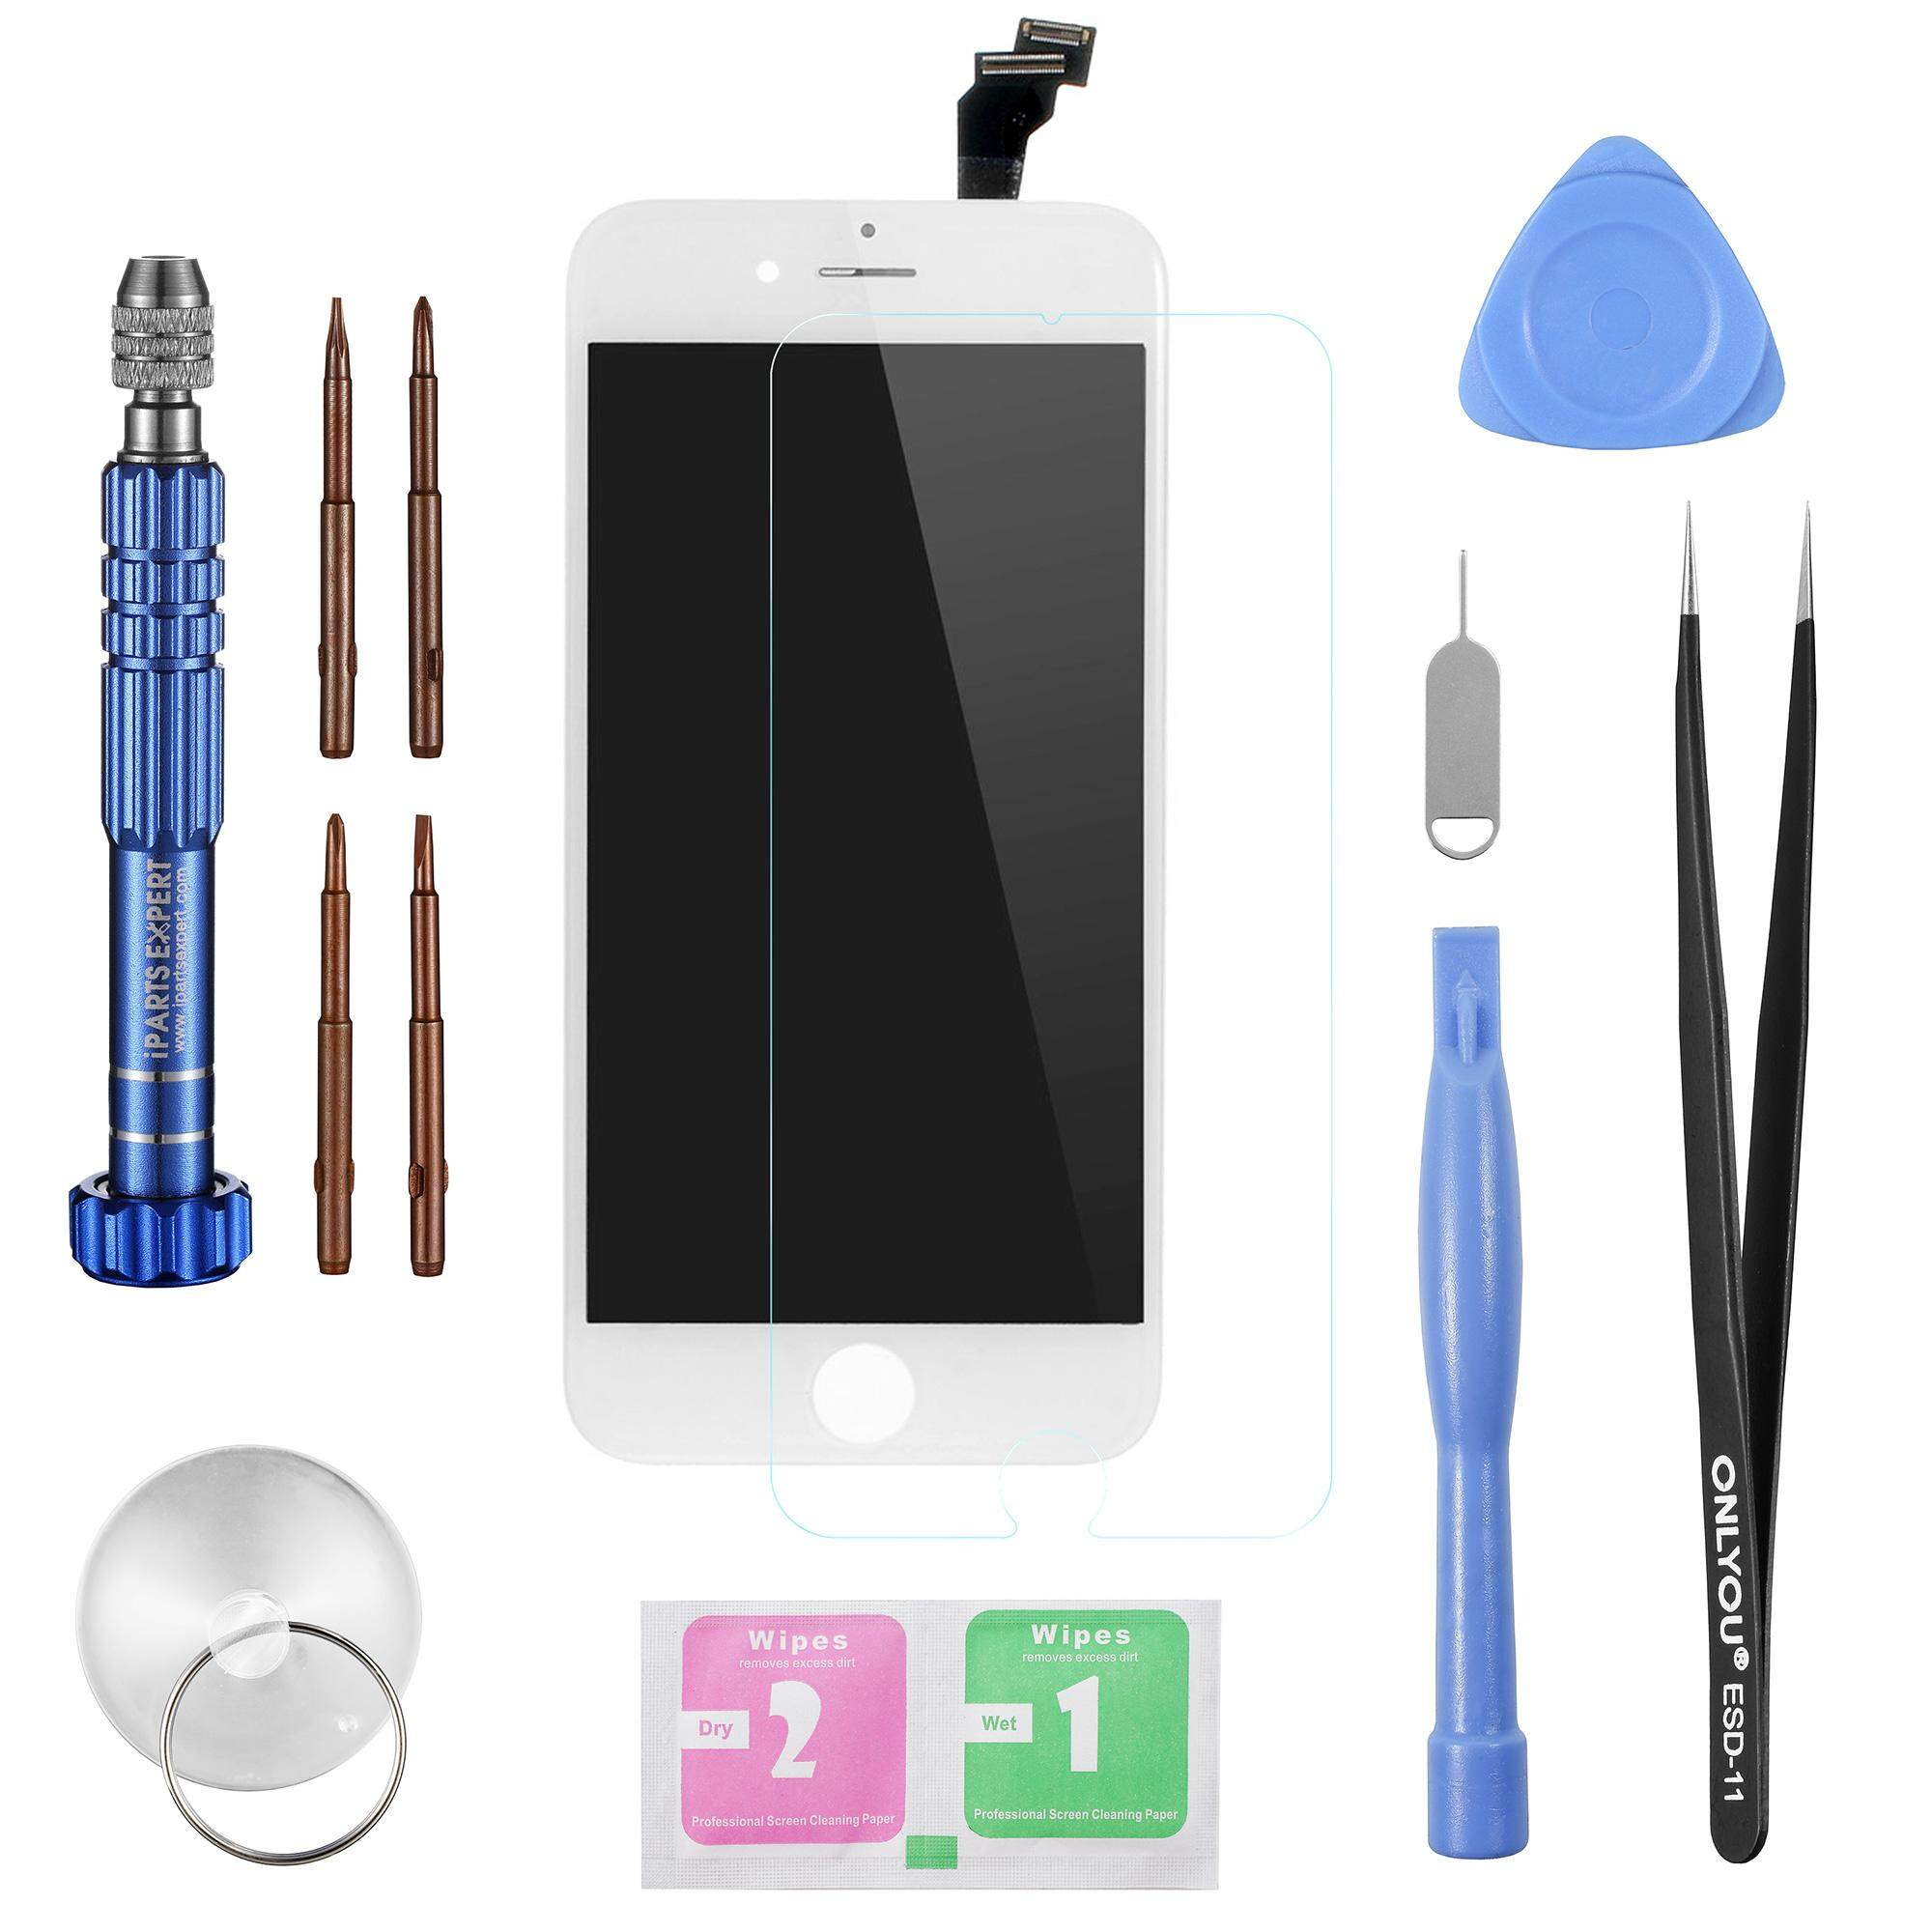 [Stock Ready] iPARTS Quality Guaranteed LCD Touch Screen and Digitizer Assembly Replacement + Professional Disassemble Repair Opening Tool Kit [All in 1] for iPhone 6 4.7 inch - Black - intl